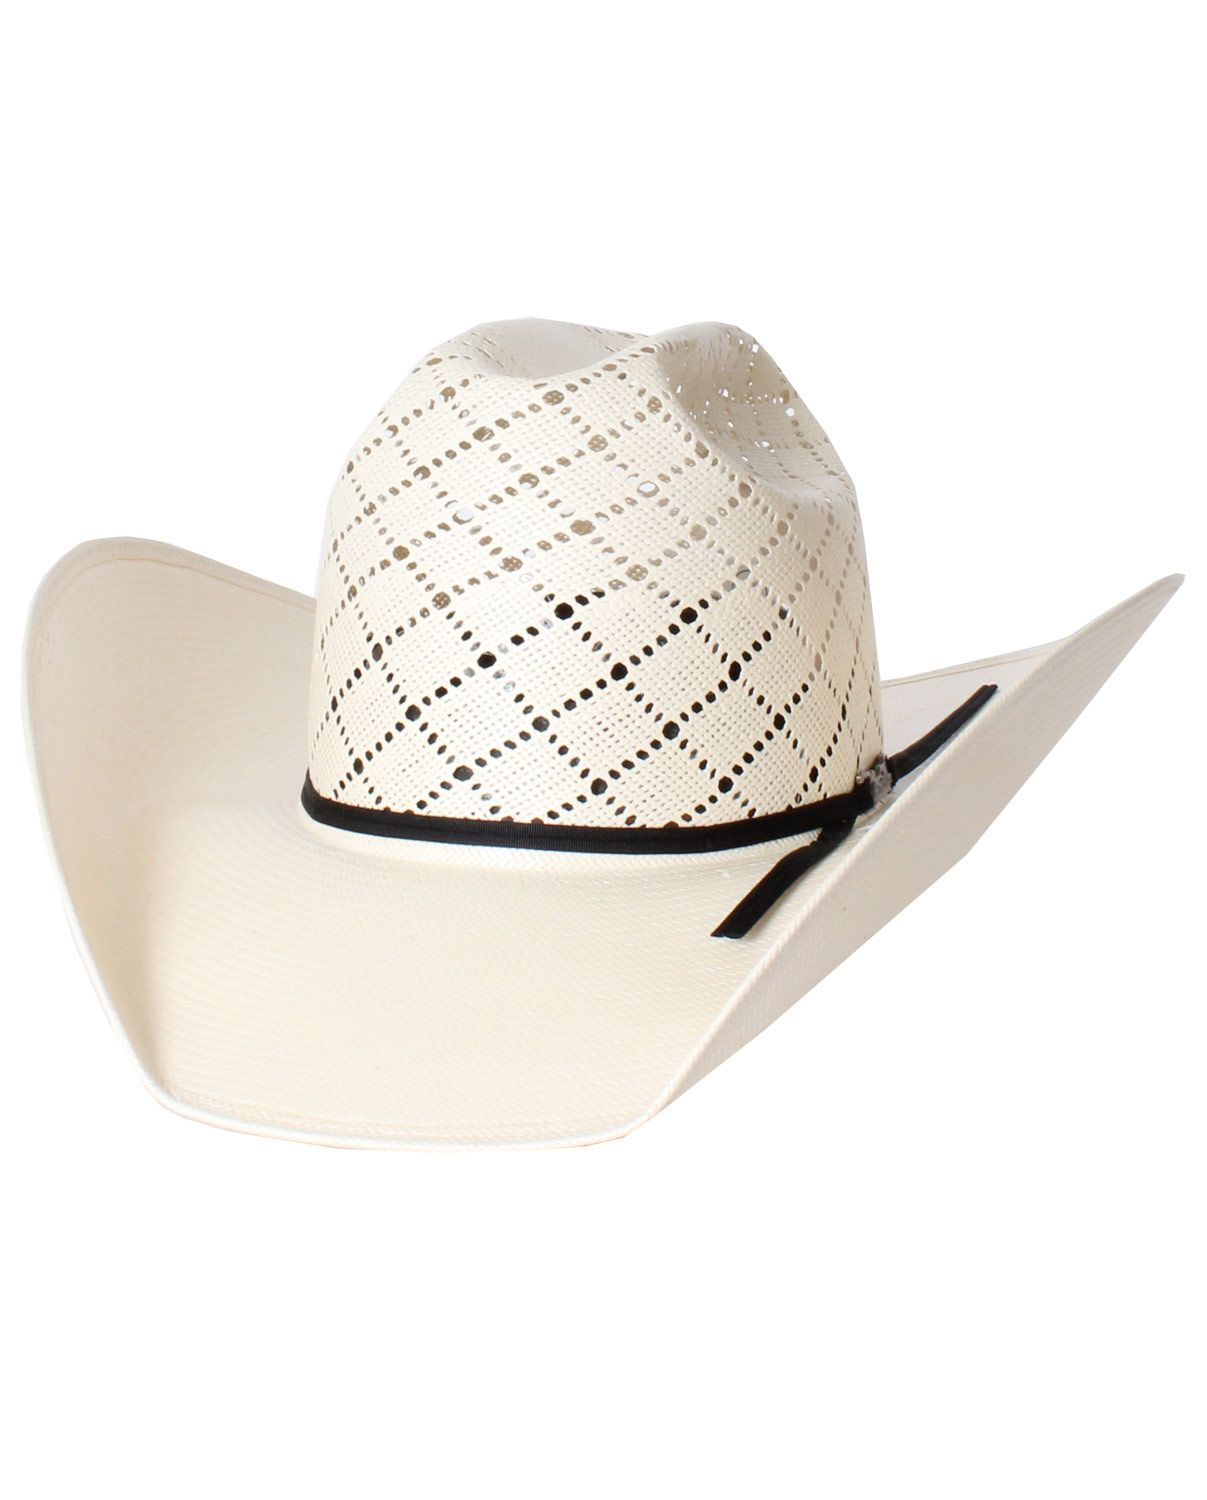 b4e8237d96 American Hat Company Men s Patchwork Cross Straw Hat - www.fortwestern.com